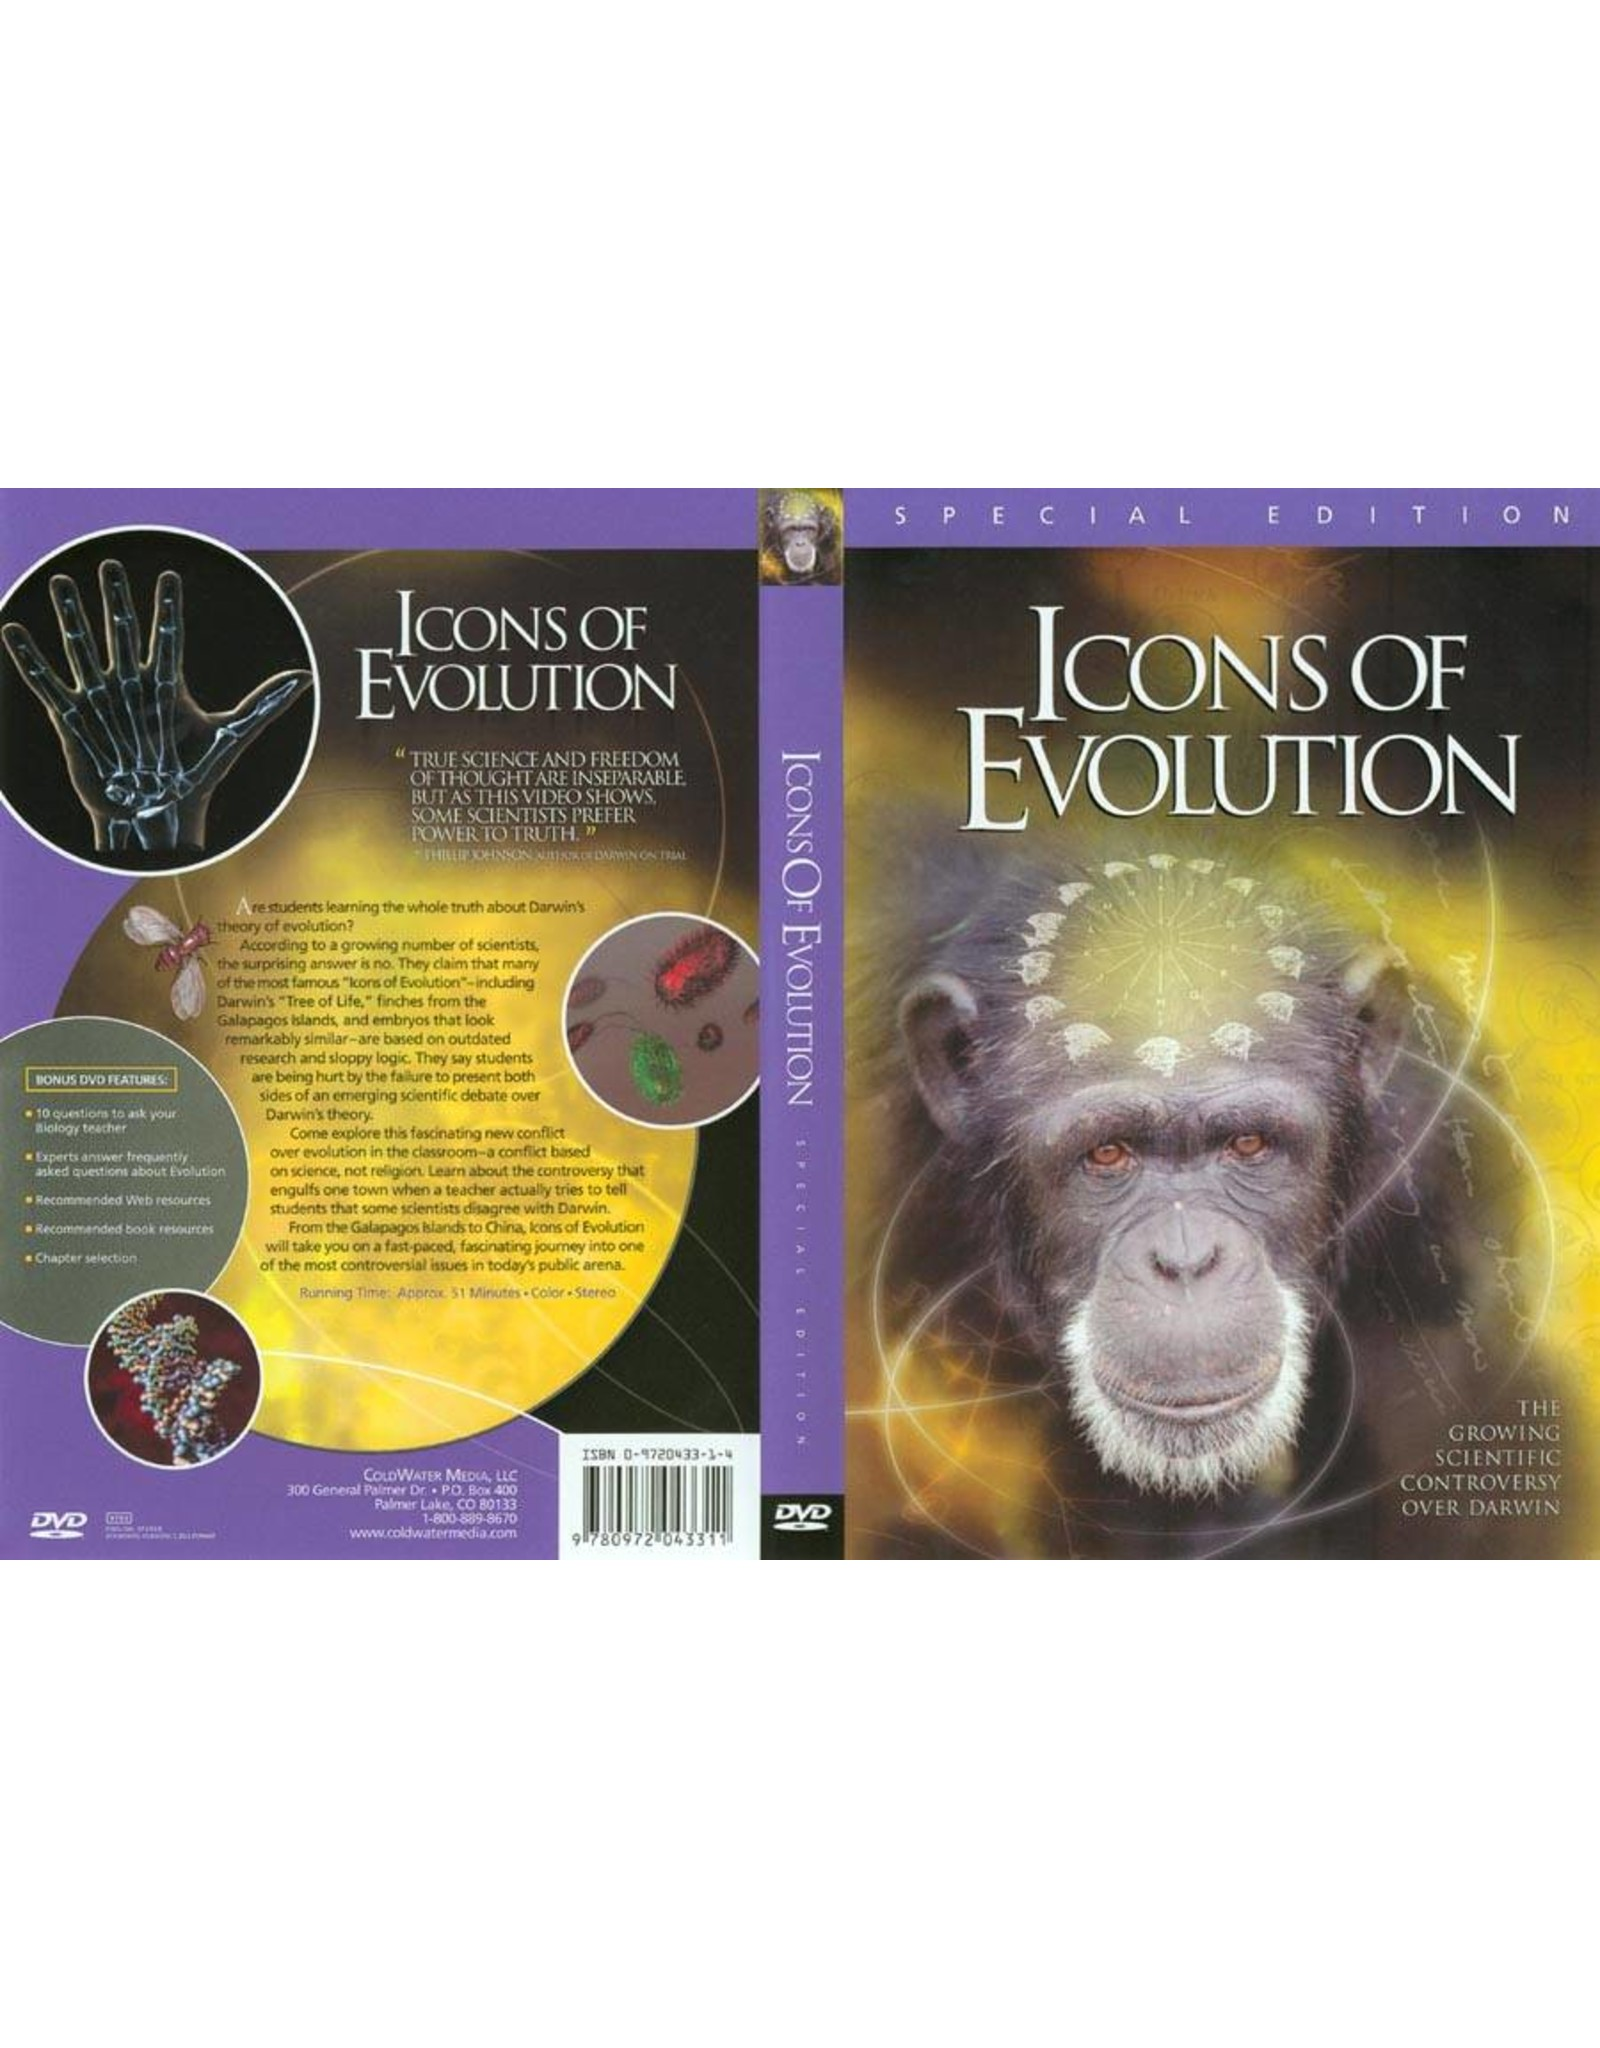 Randolf Icons of Evolution: The Growing Scientific Controversy Over Darwin (DVD)